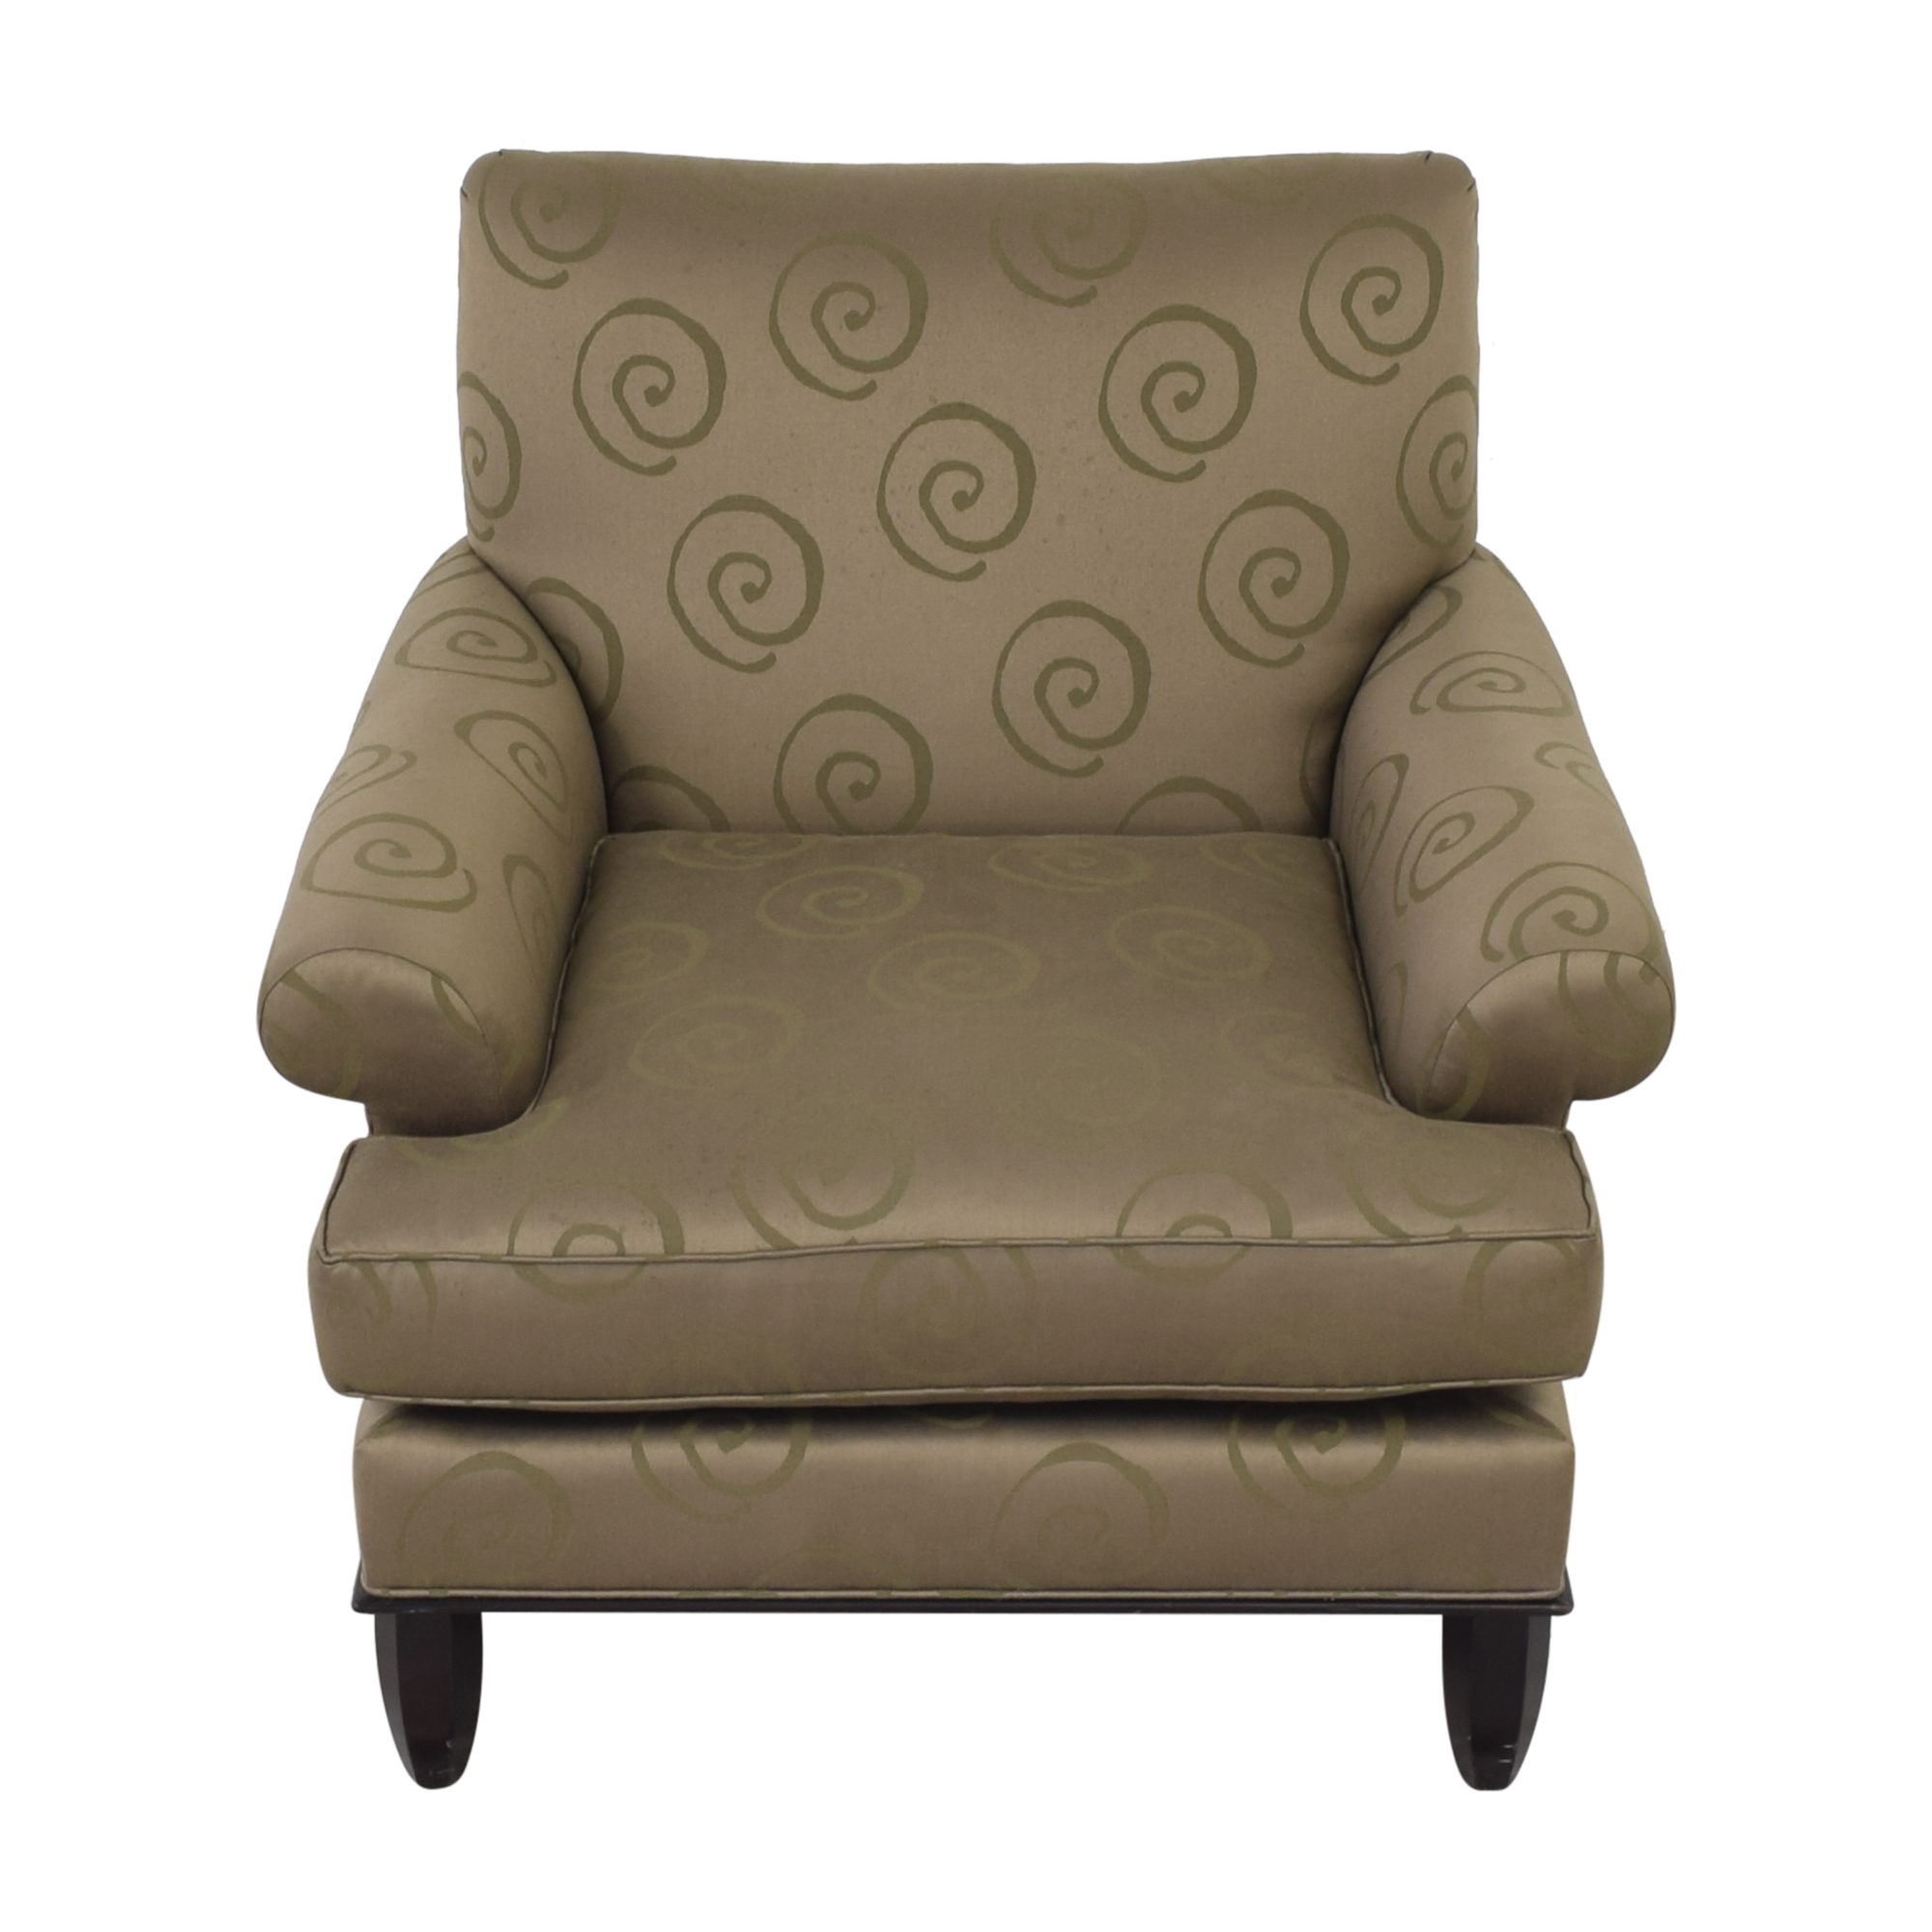 Baker Furniture Baker Roll Arm Lounge Chair for sale